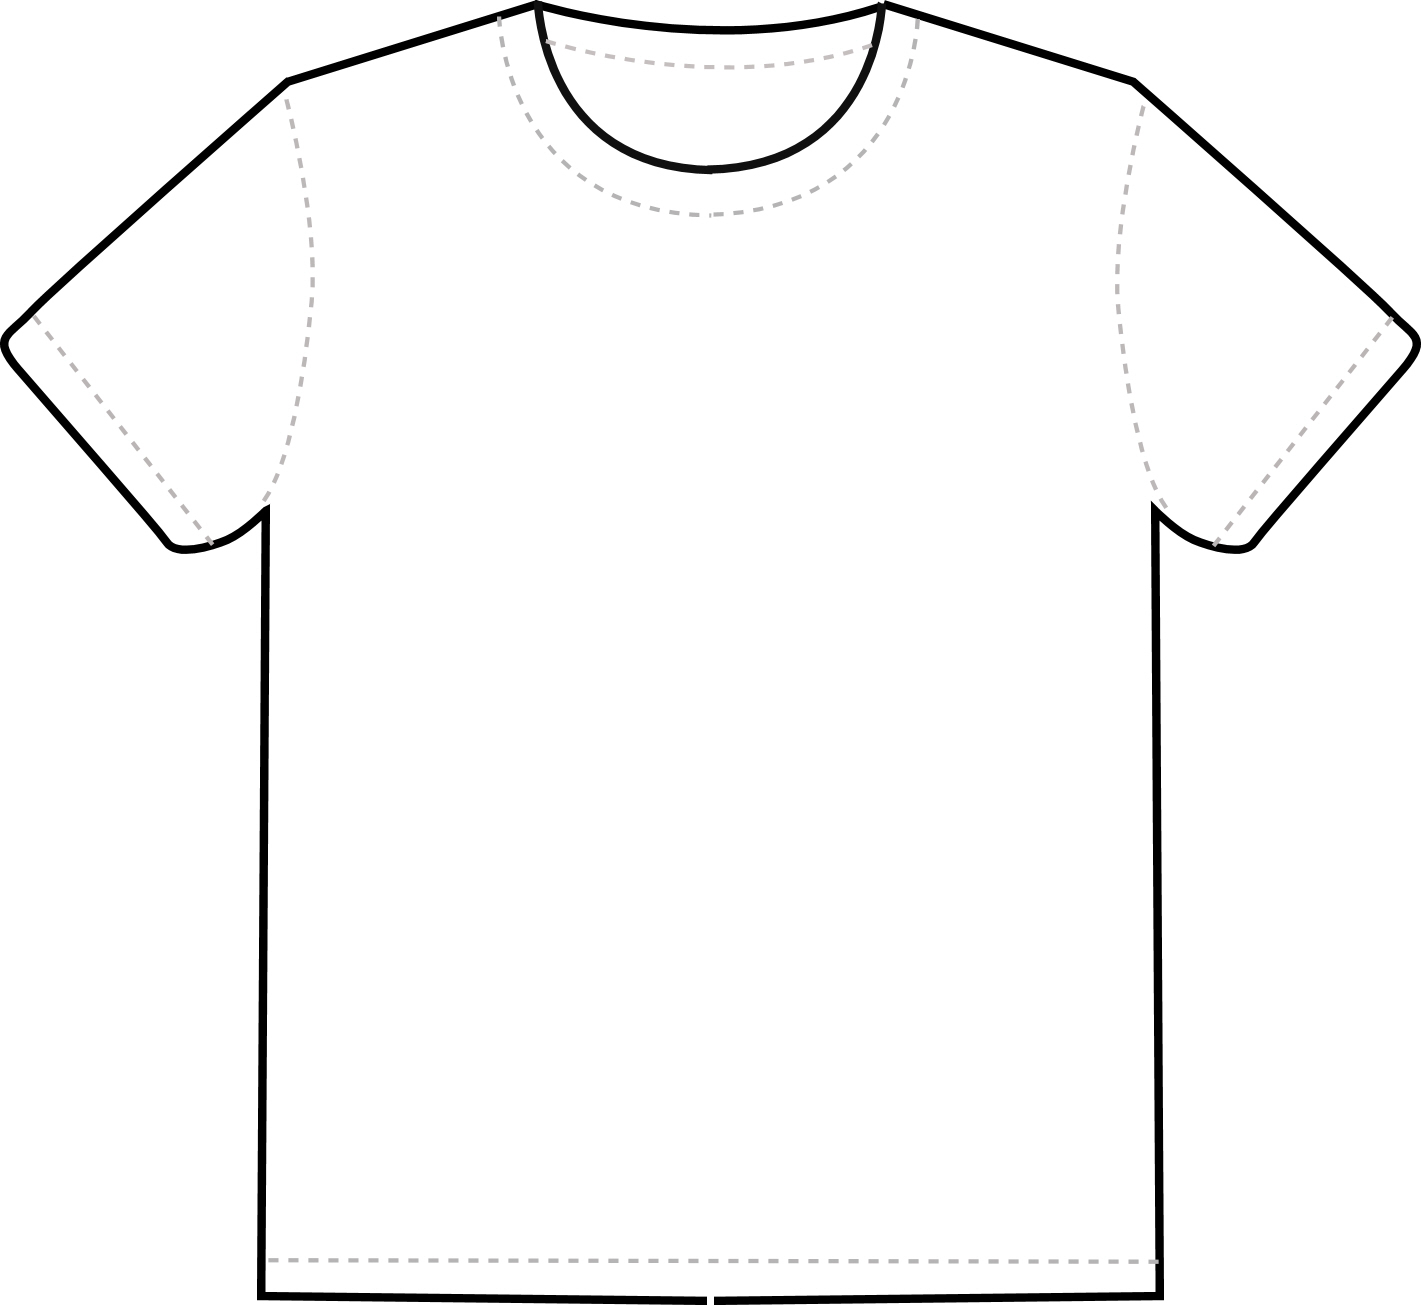 Buy tee shirt layout - 57% OFF!